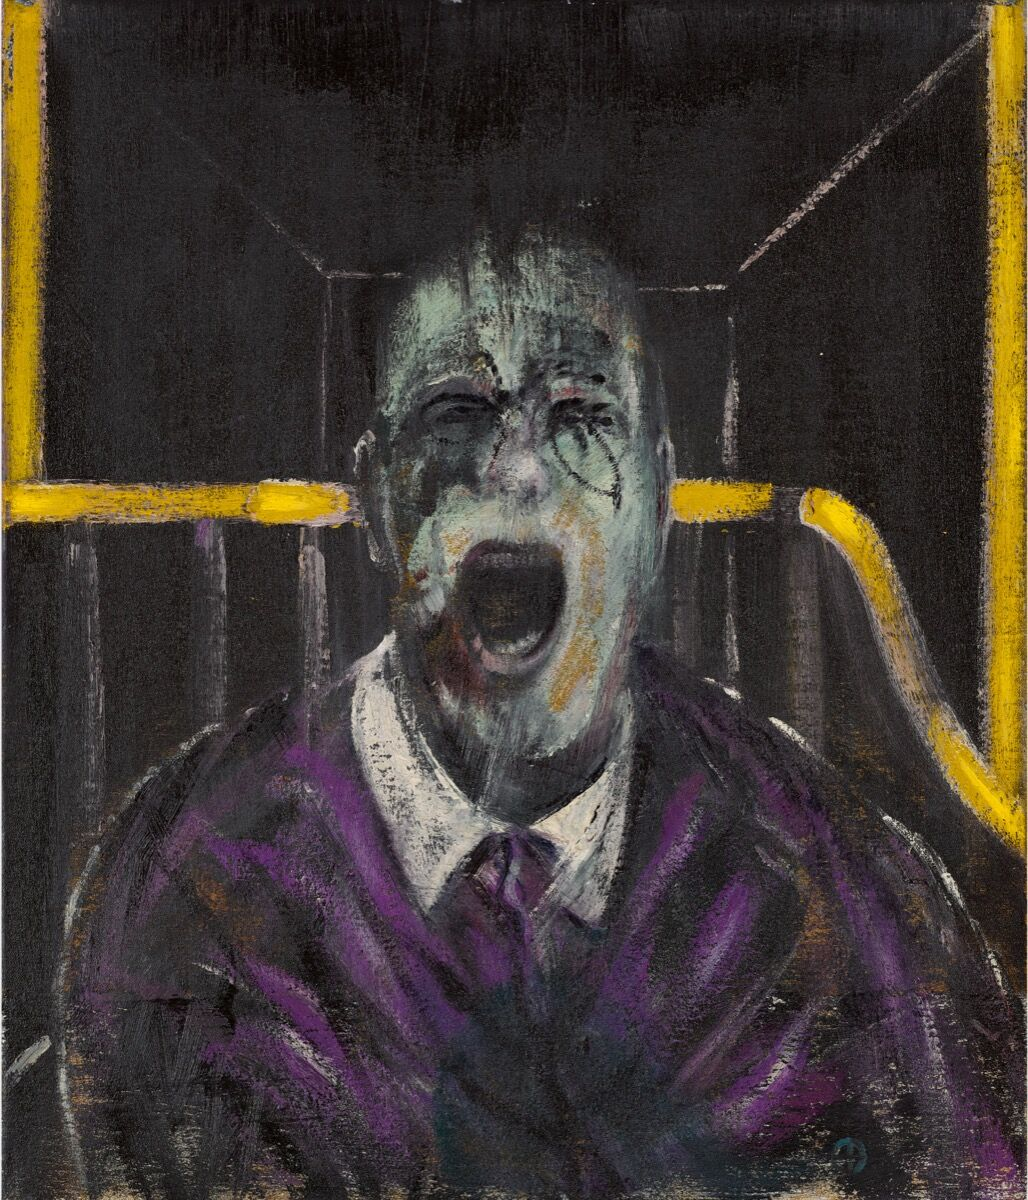 Francis Bacon, Study for a Head, 1952. Courtesy of Sotheby's.